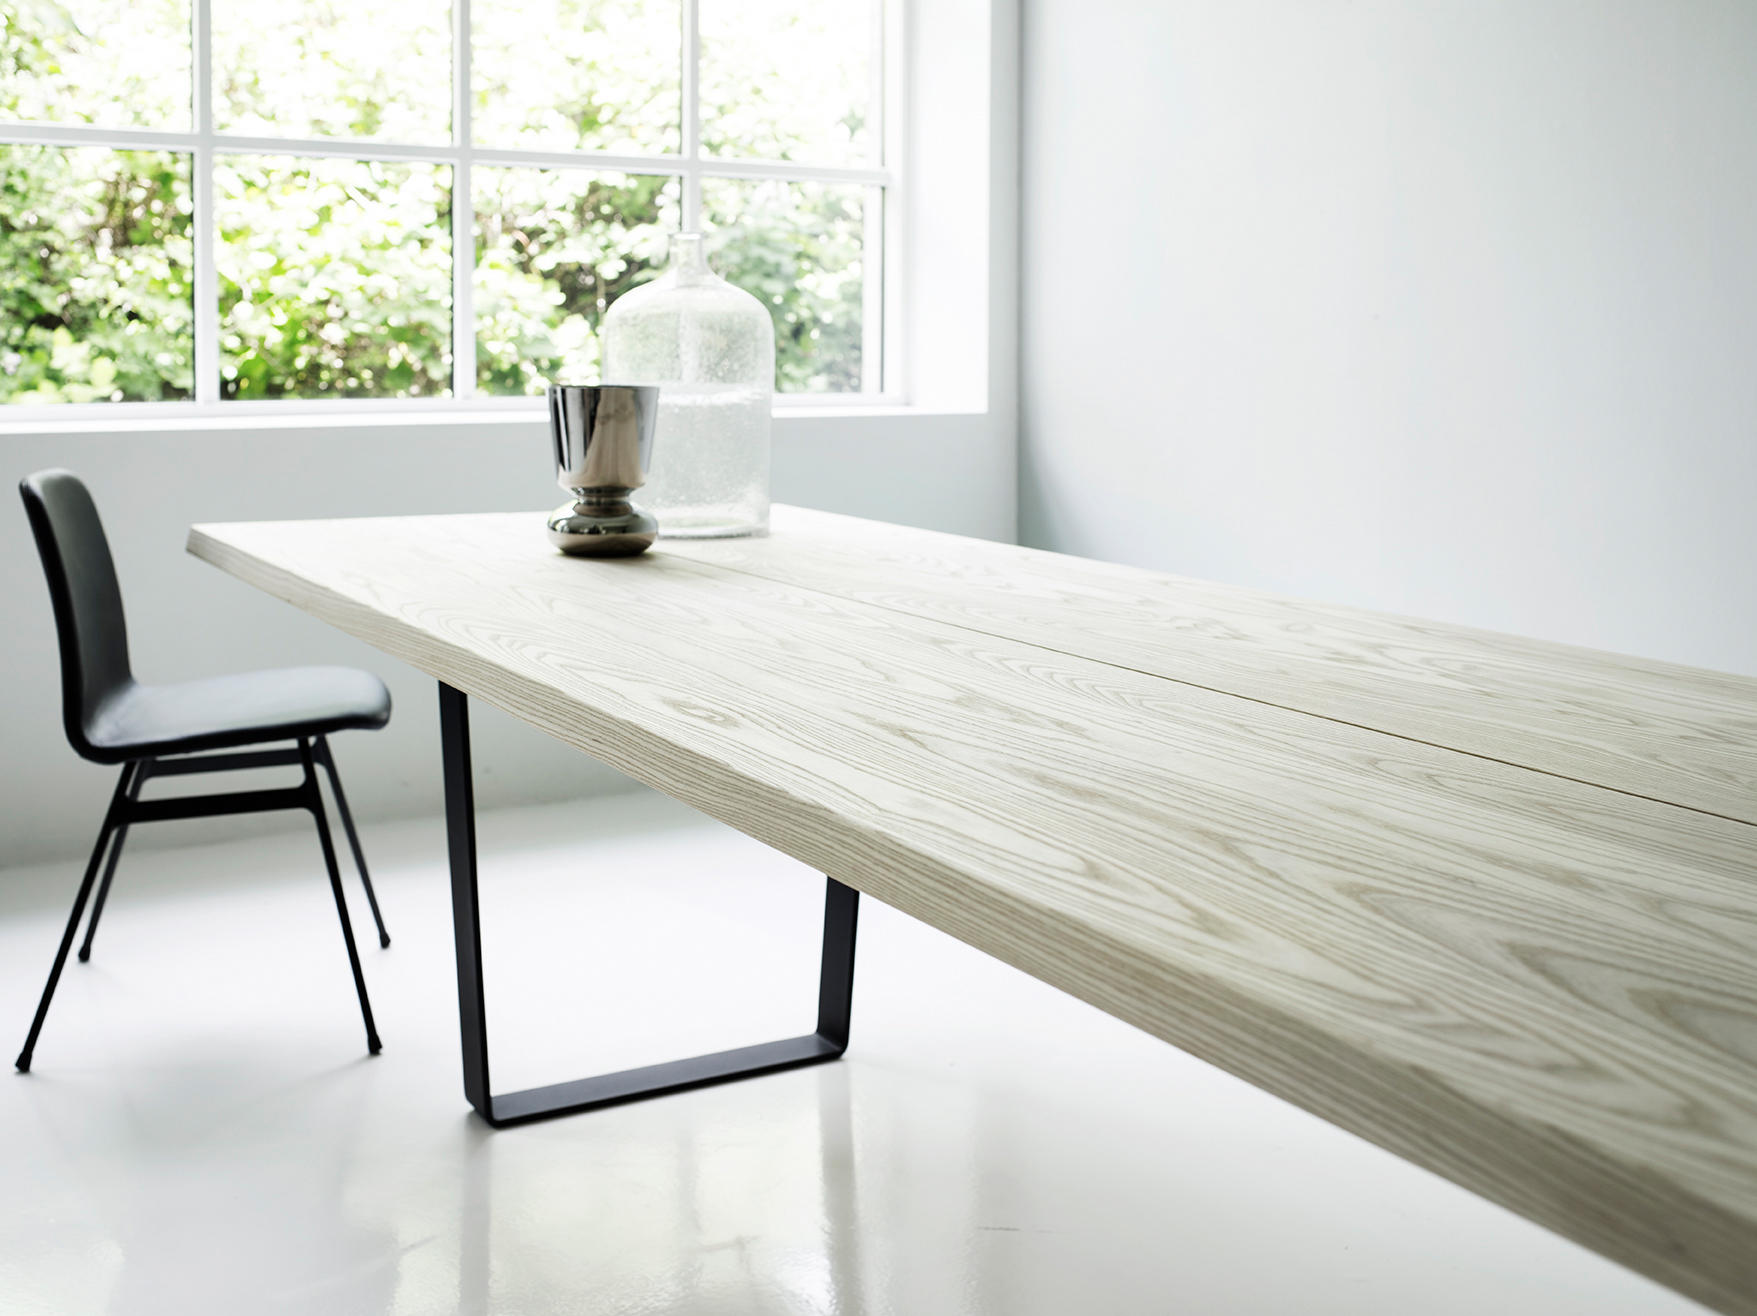 Lowlight table restaurant tables from dk3 architonic for Table 300 cm